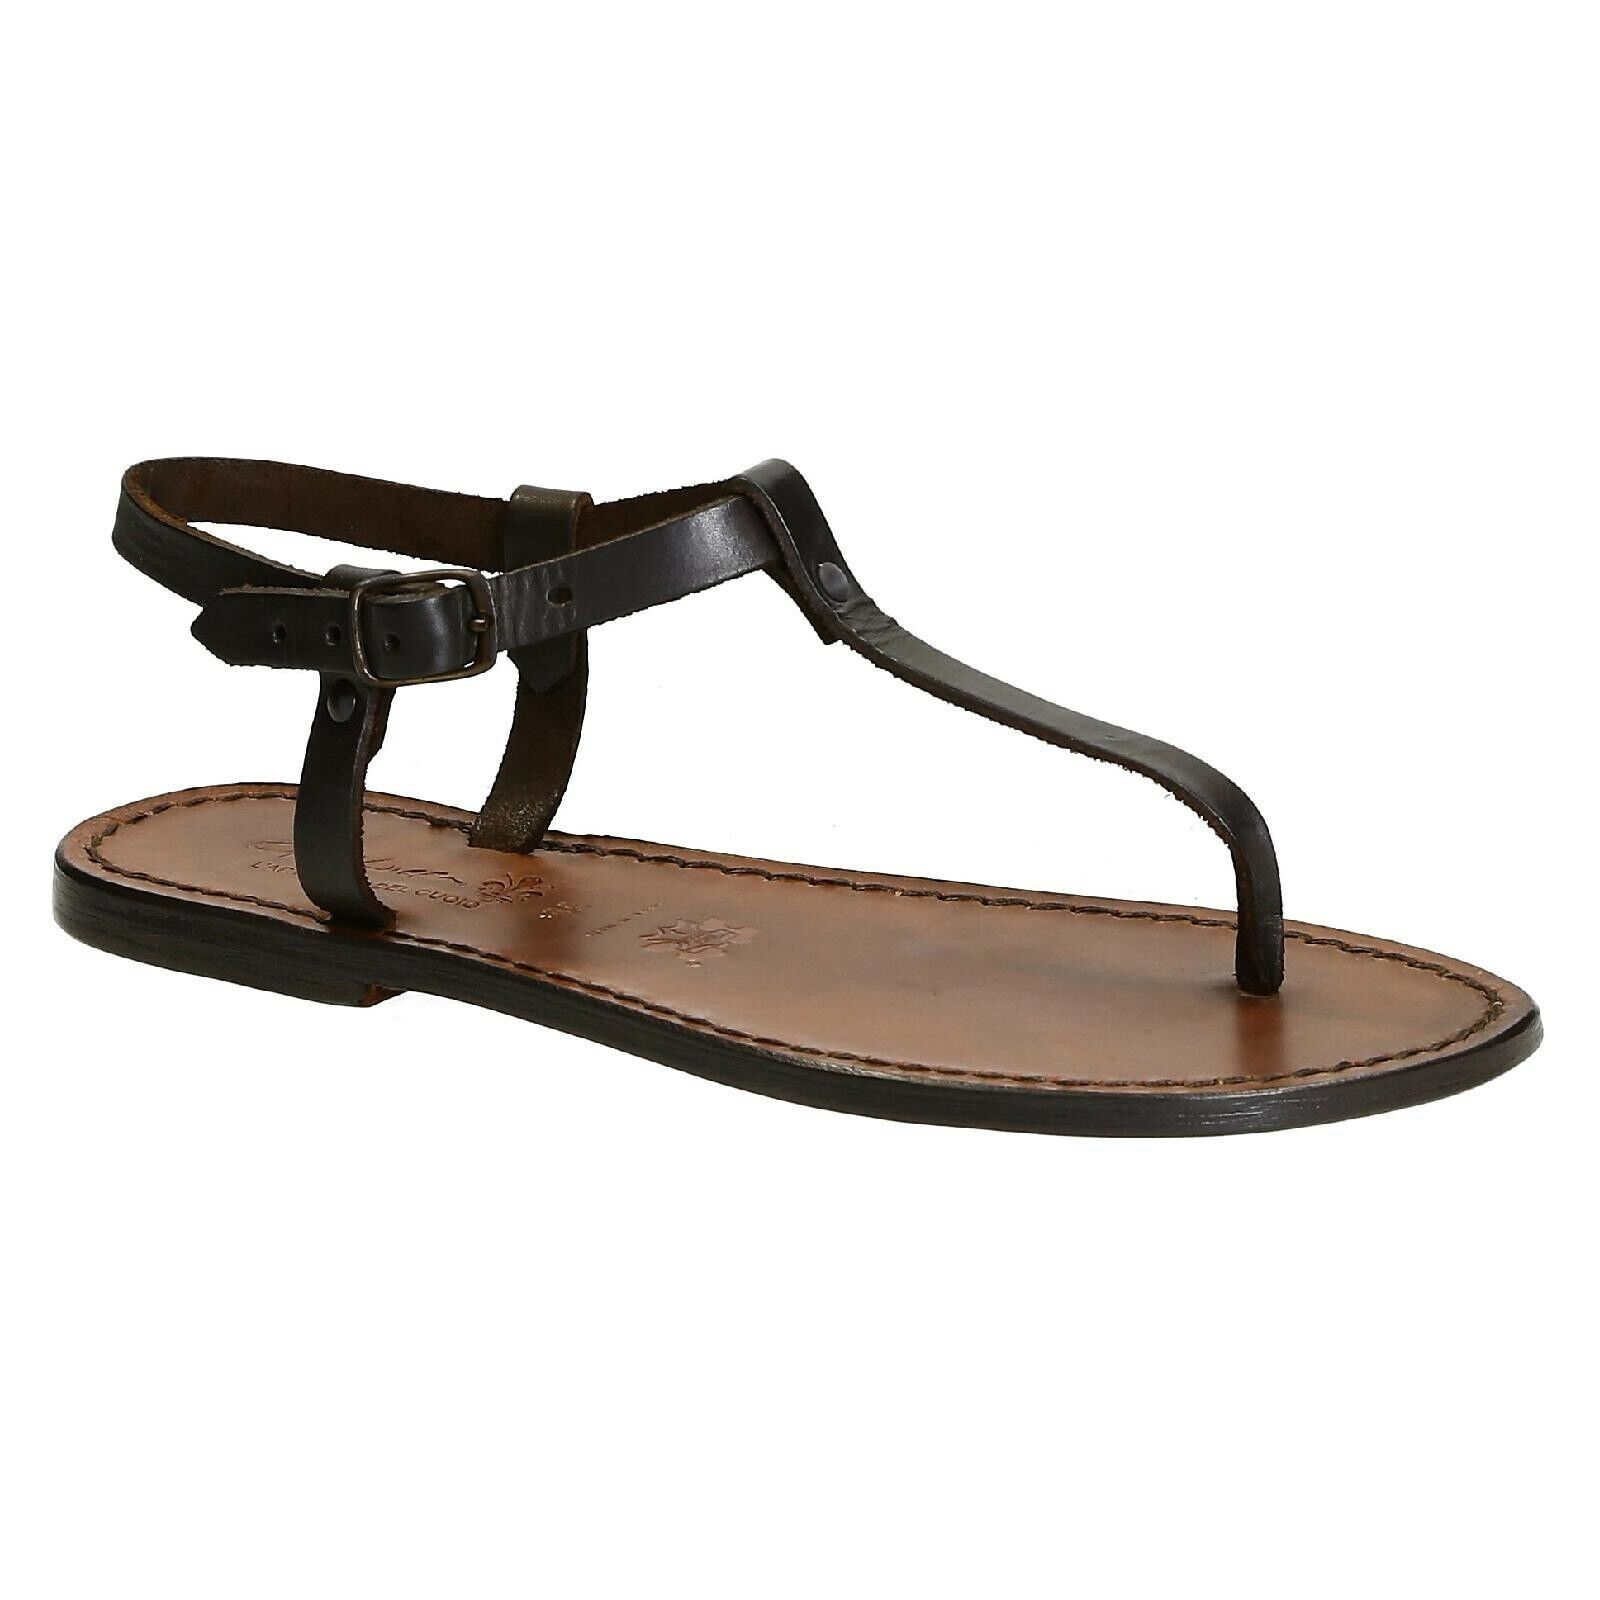 Handmade Women T-strap thong sandals flat shoes dark brown leather Made in